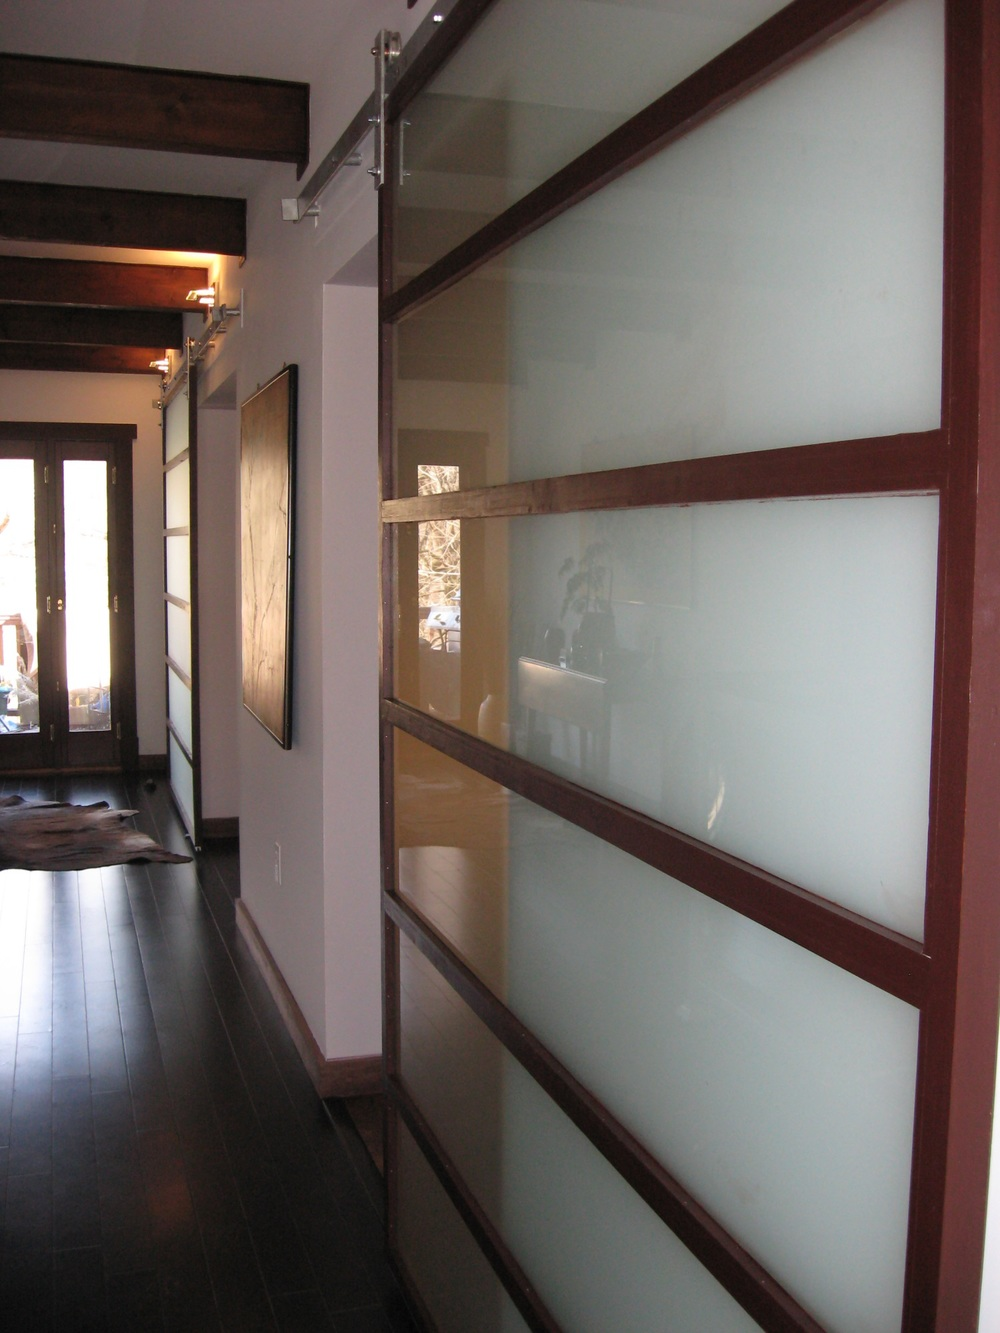 At the back of the foyer hall is another door leading out to an existing deck.